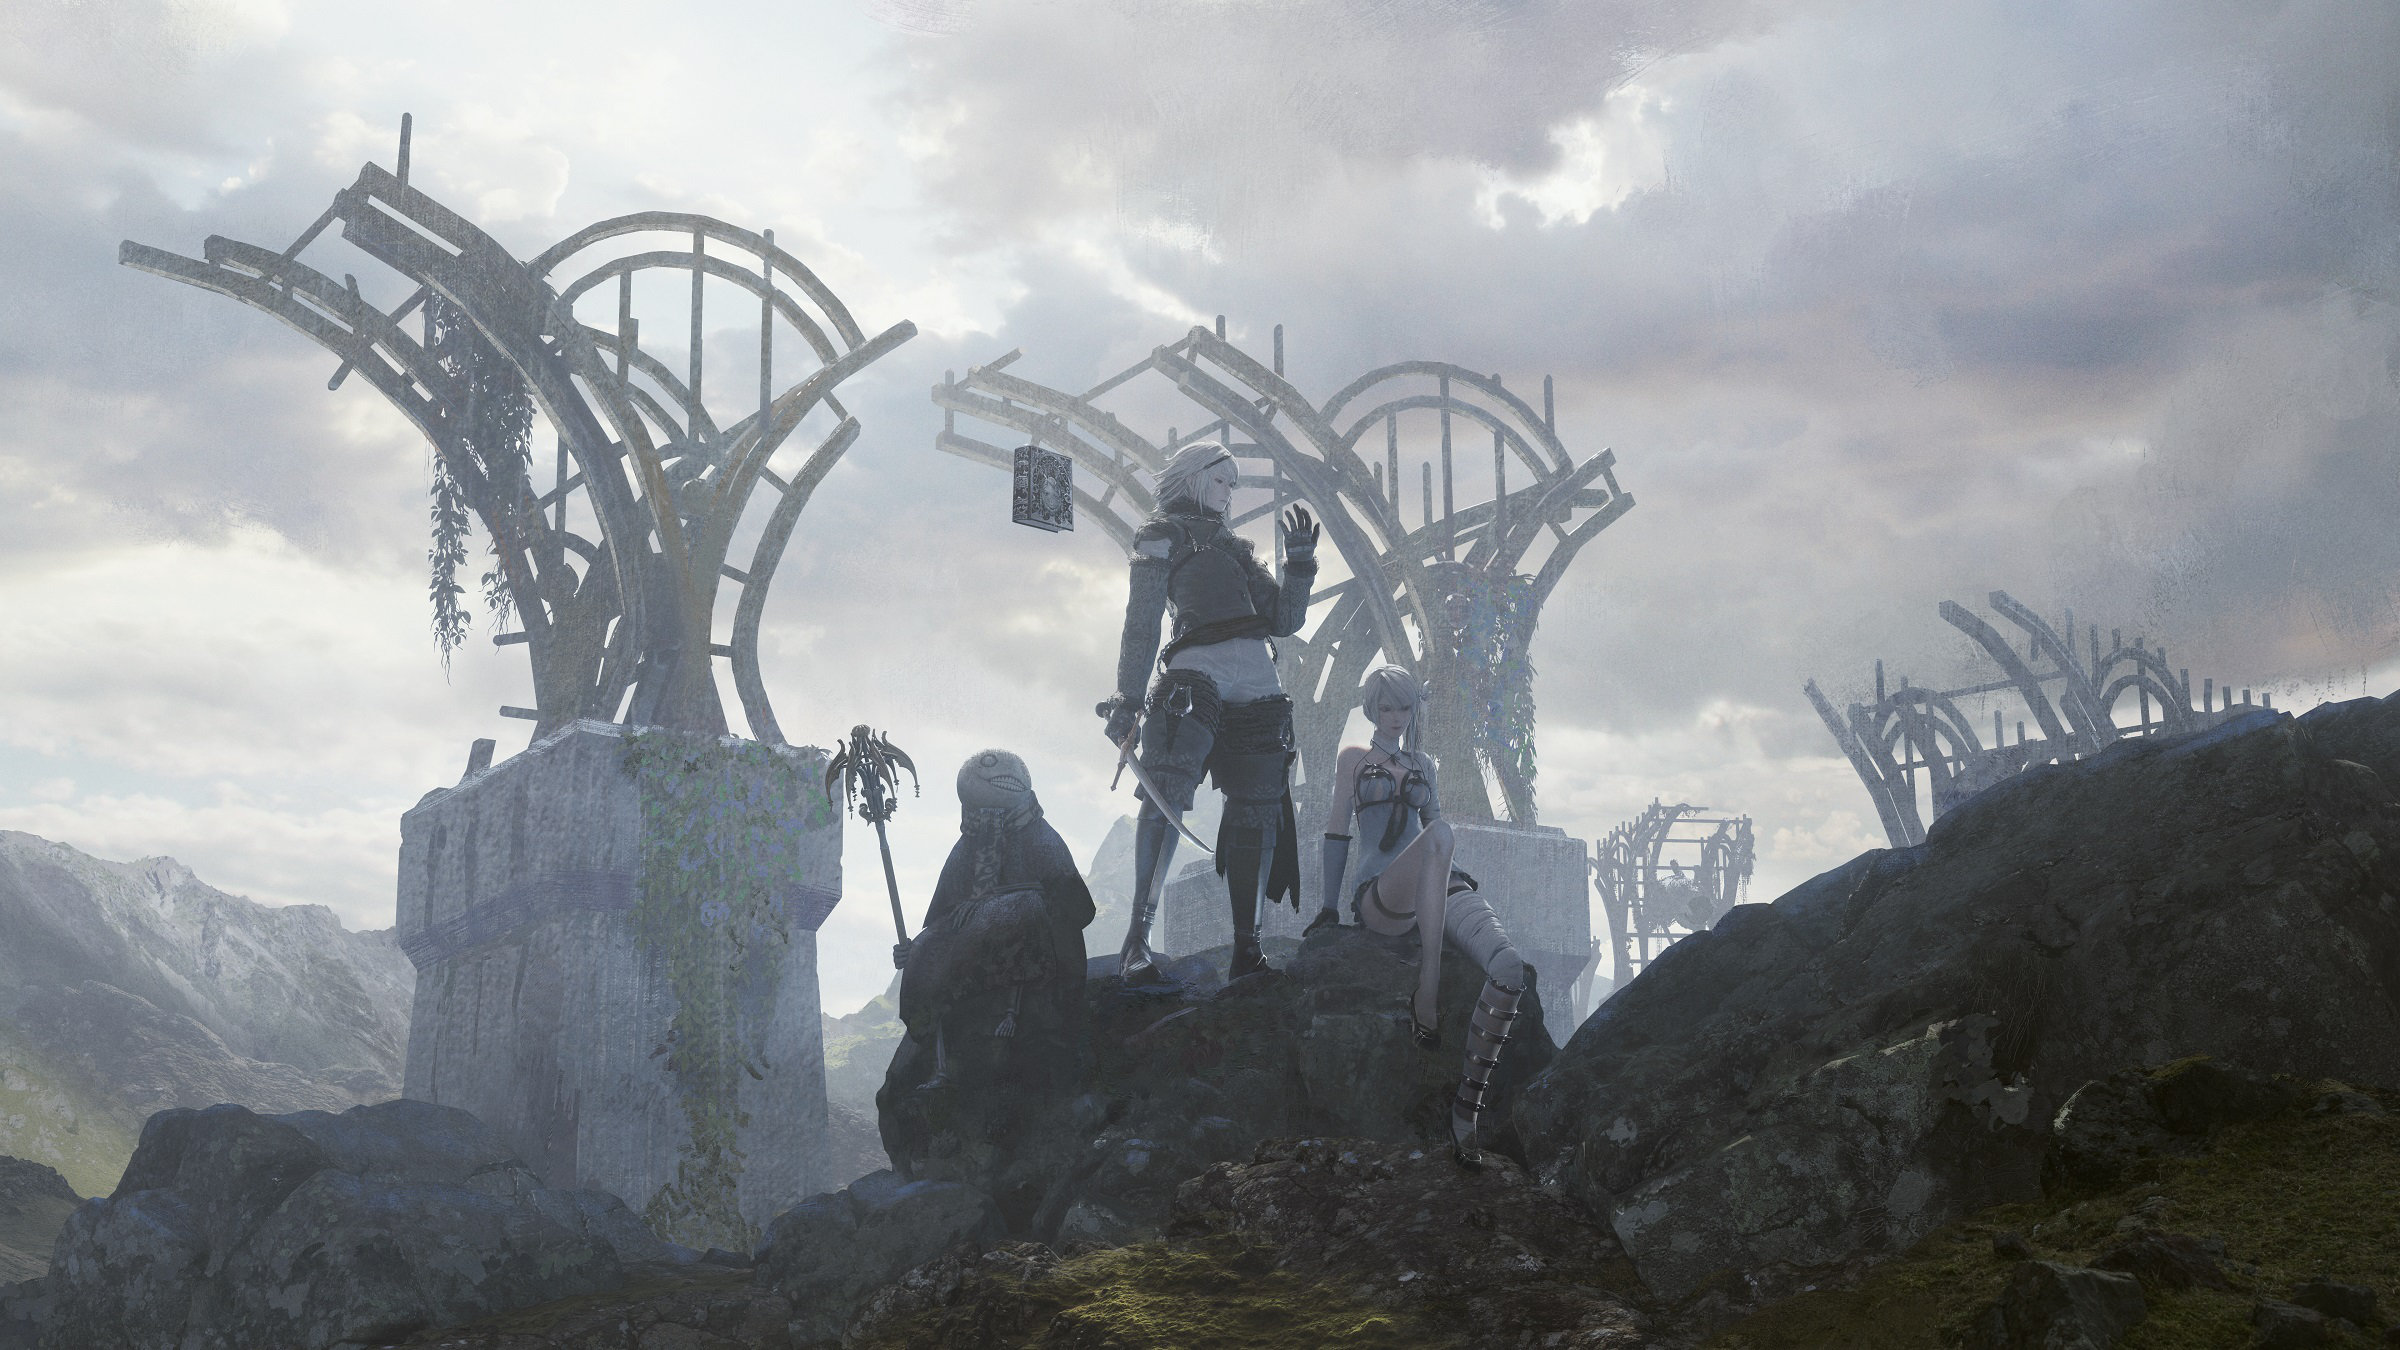 NieR Replicant ver122474487139 Key Artwork depicting the protagonist, Grimoire Weiss, Kaine, and Emil